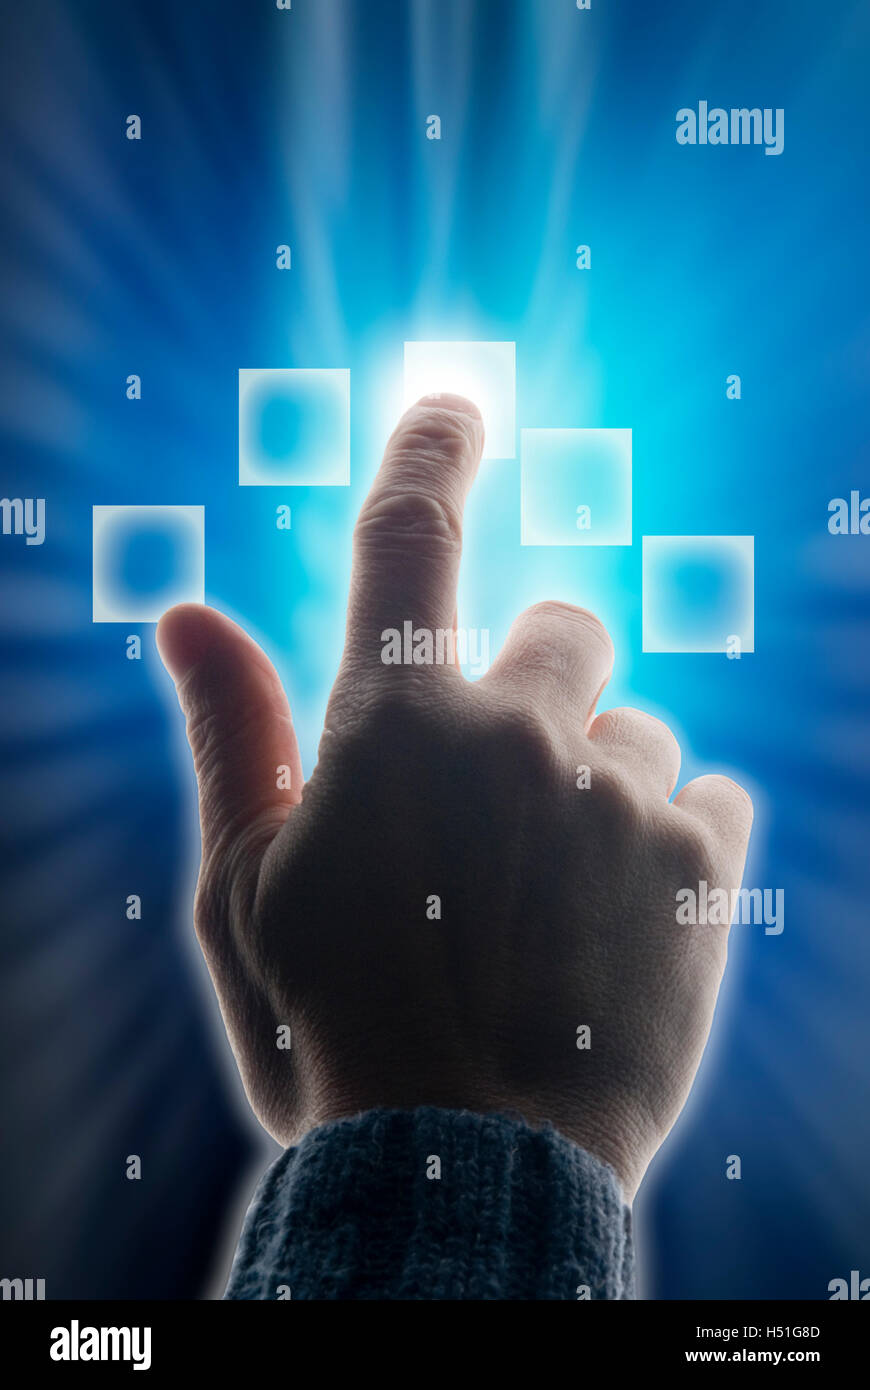 male finger scanned, identification and biometric scan - Stock Image